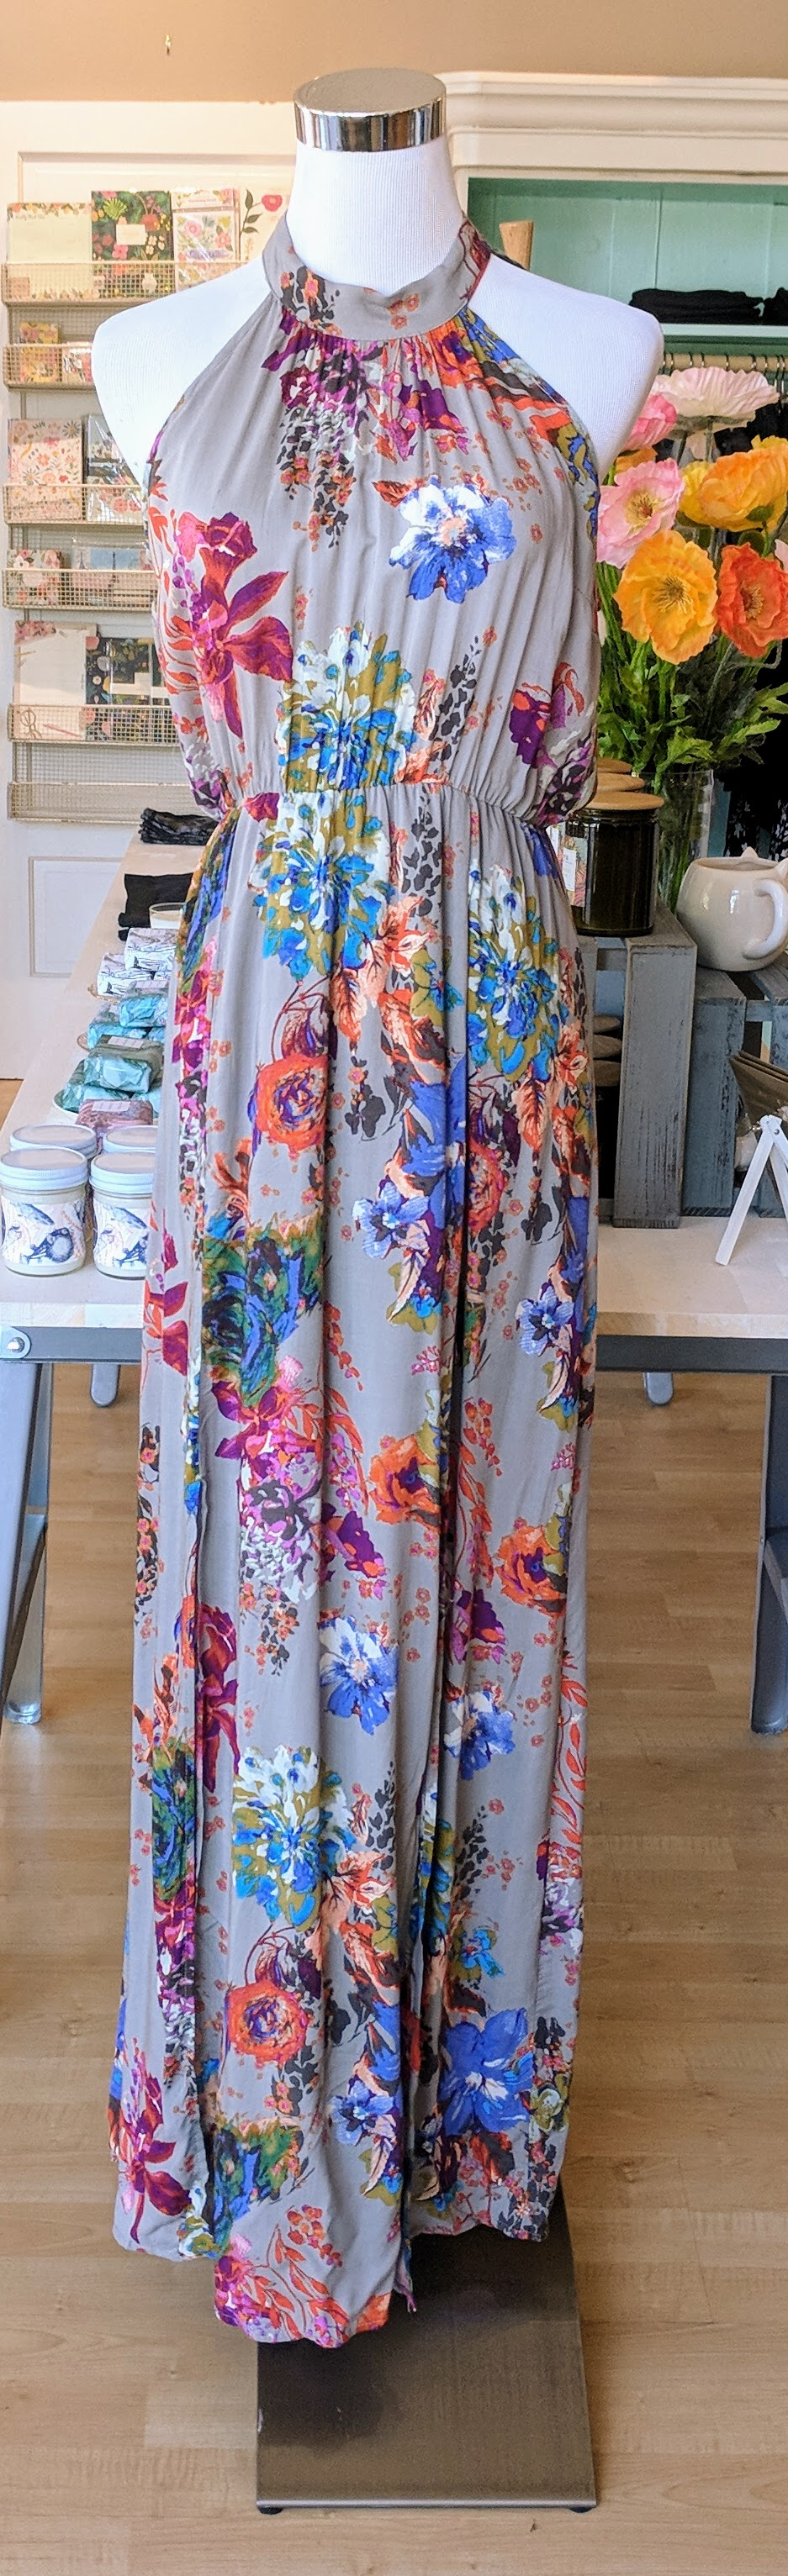 Heather Grey floral print maxi dress with side slits and a tie neck.